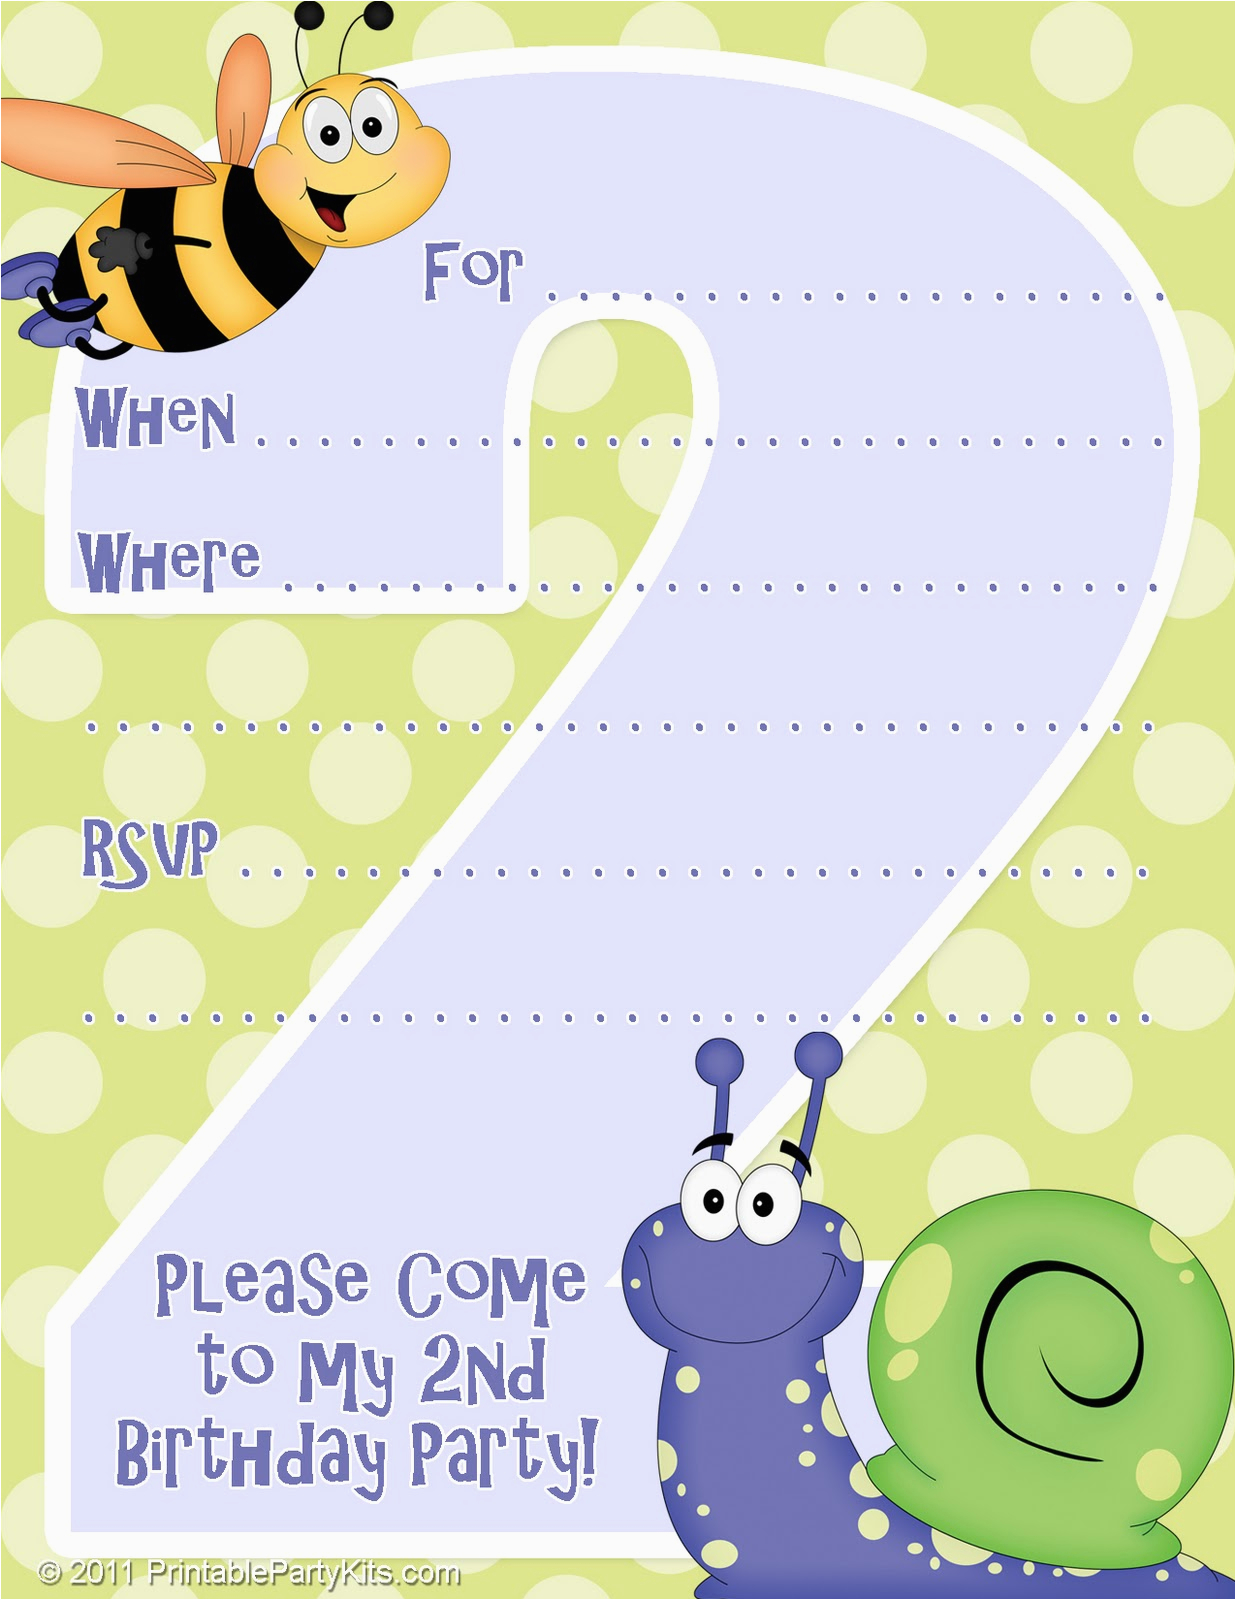 2nd Birthday Party Invites Free Printable Invitations Invitation Template For